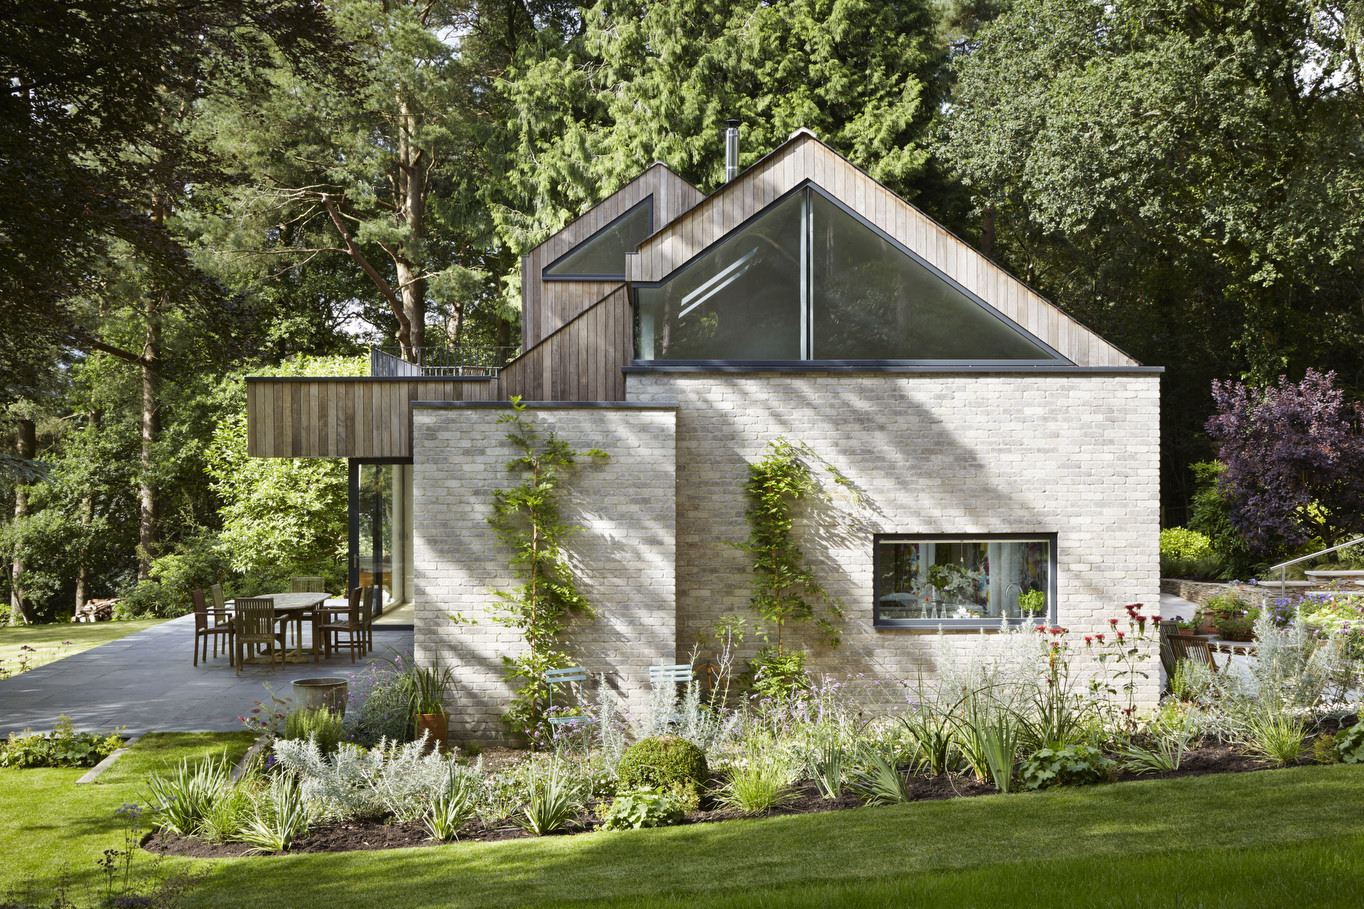 </p> <p>Find your ideal home design pro on designfor-me.com - get matched and see who's interested in your home project. Click image to see more inspiration from our design pros</p> <p>Design by Caspar, architect from Lambeth, London</p> <p>#architecture #homedesign #modernhomes #homeinspiration #timbercladding #selfbuilds #selfbuildinspiration #selfbuildideas #granddesigns </p> <p>